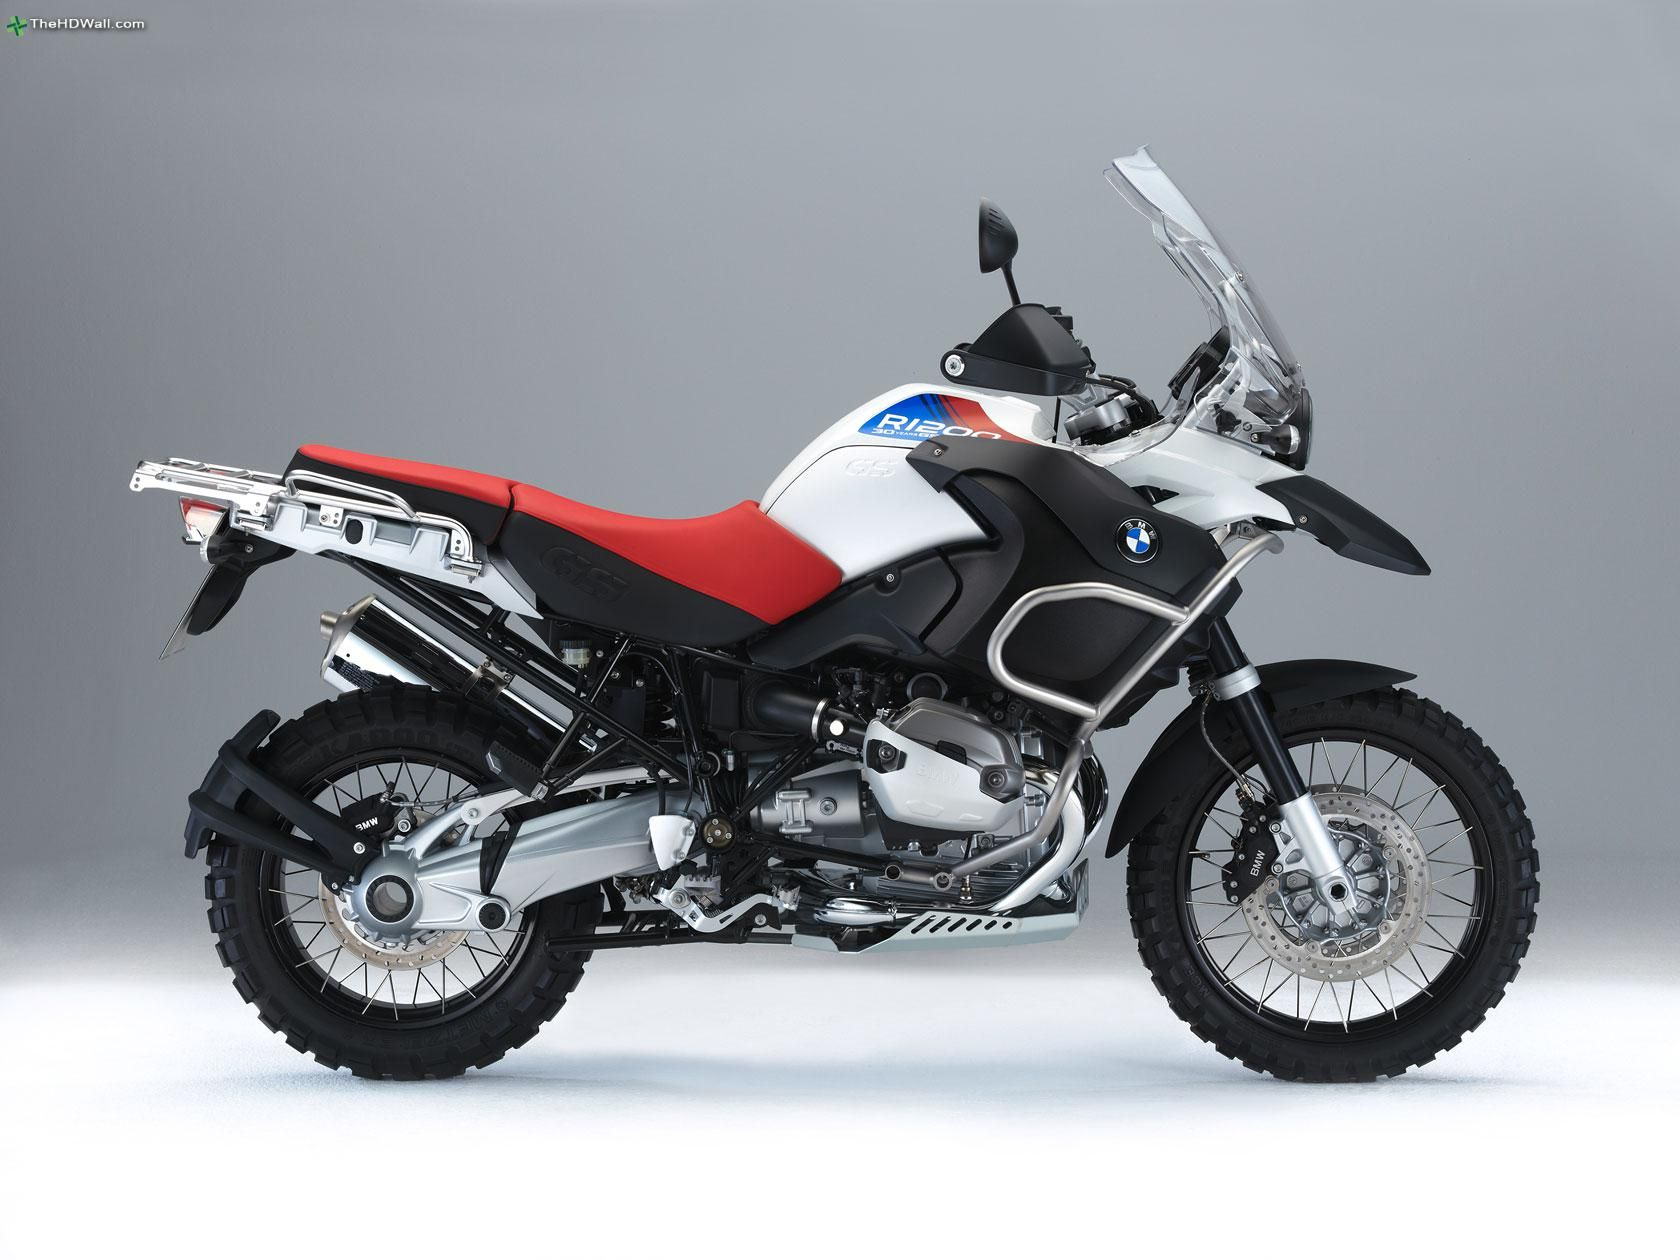 2011 Bmw R1200gs Adventure With Images Bmw Bmw Motorcycle